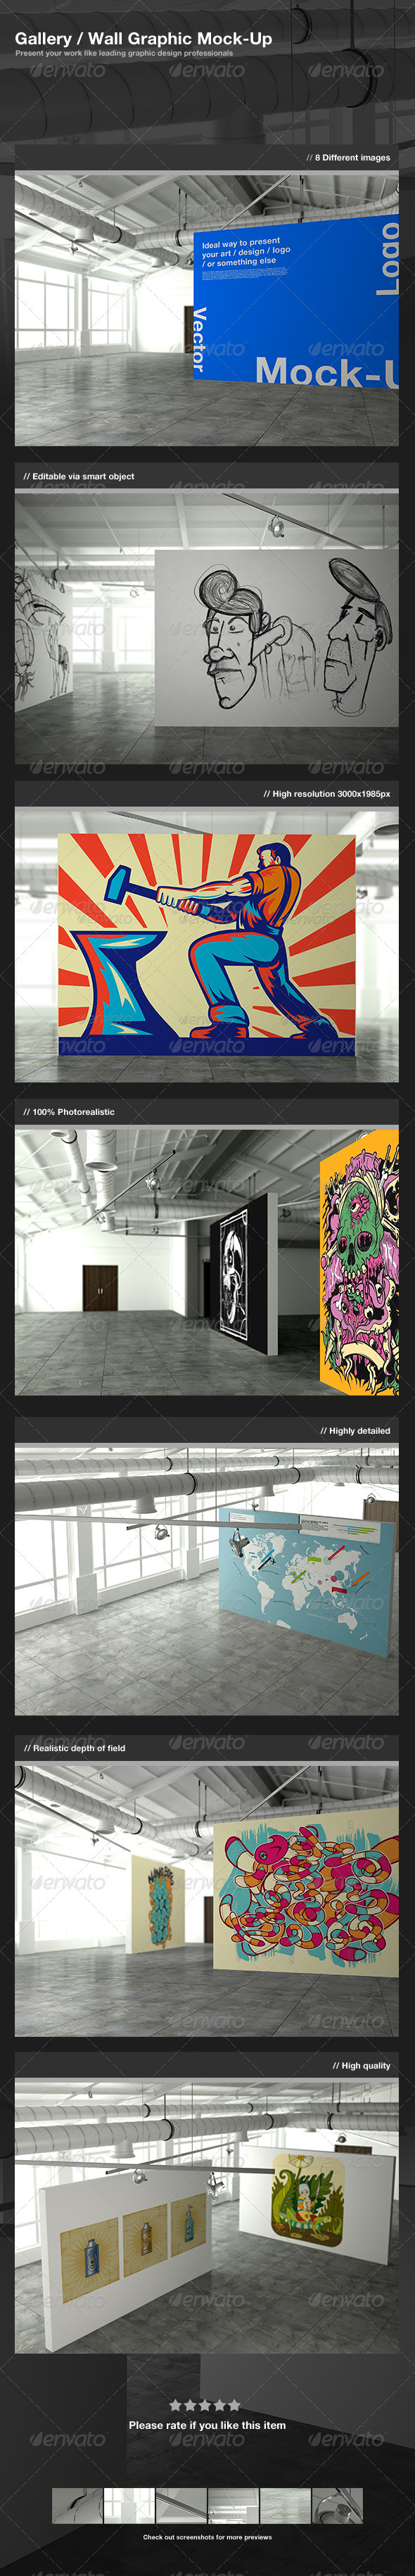 GraphicRiver Gallery Wall Graphic Mock-Up 2409693